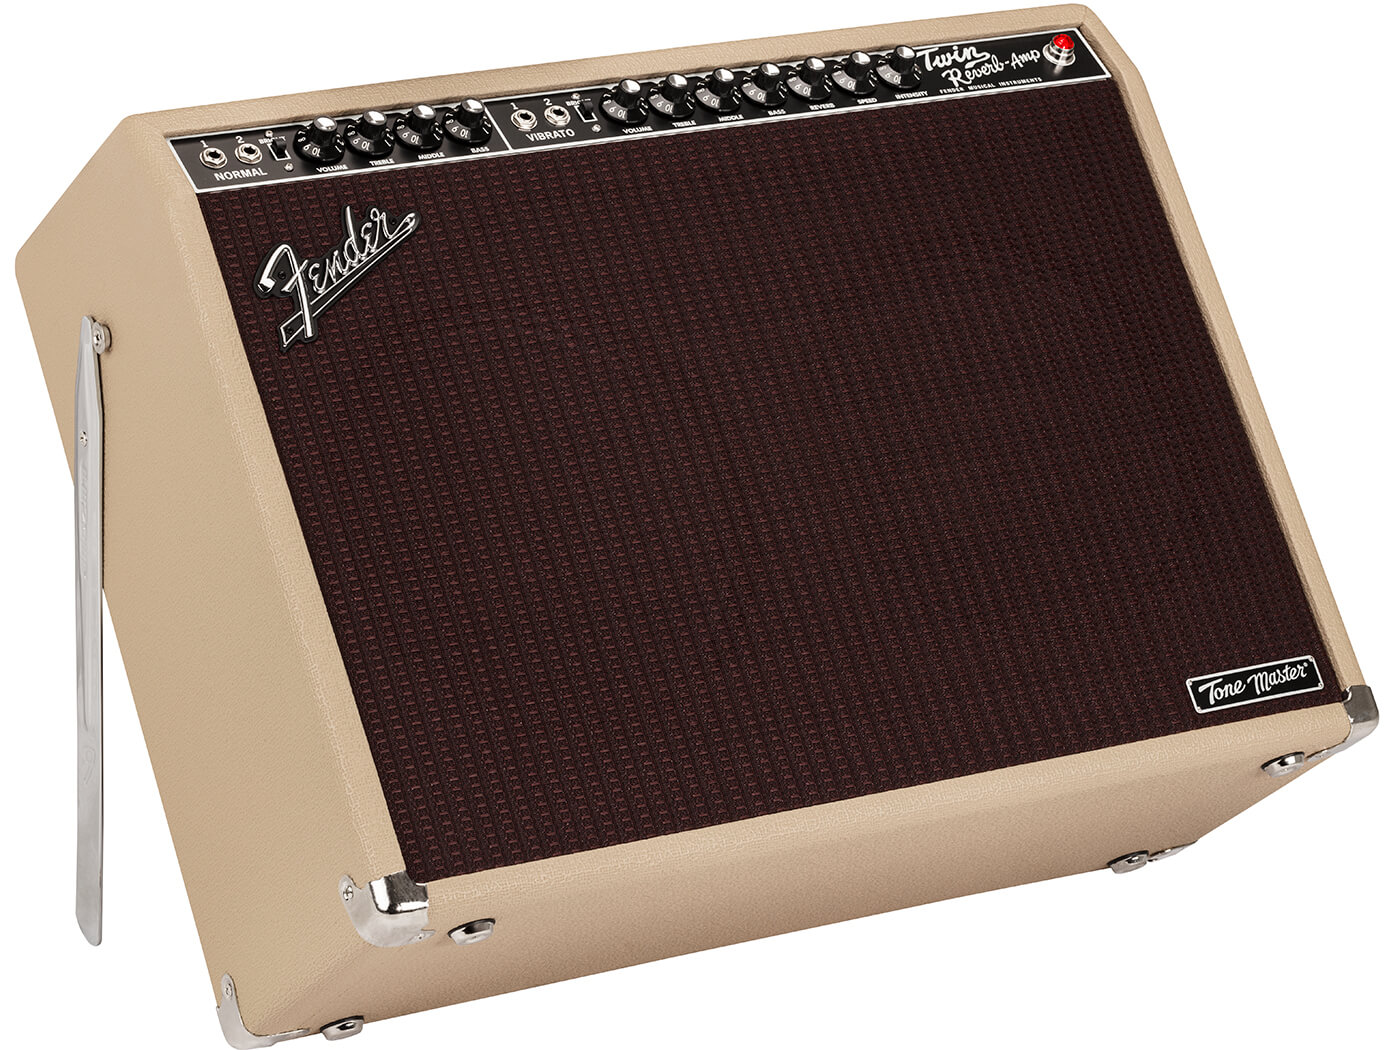 Fender Tone Master Twin Reverb Blonde Amplifier